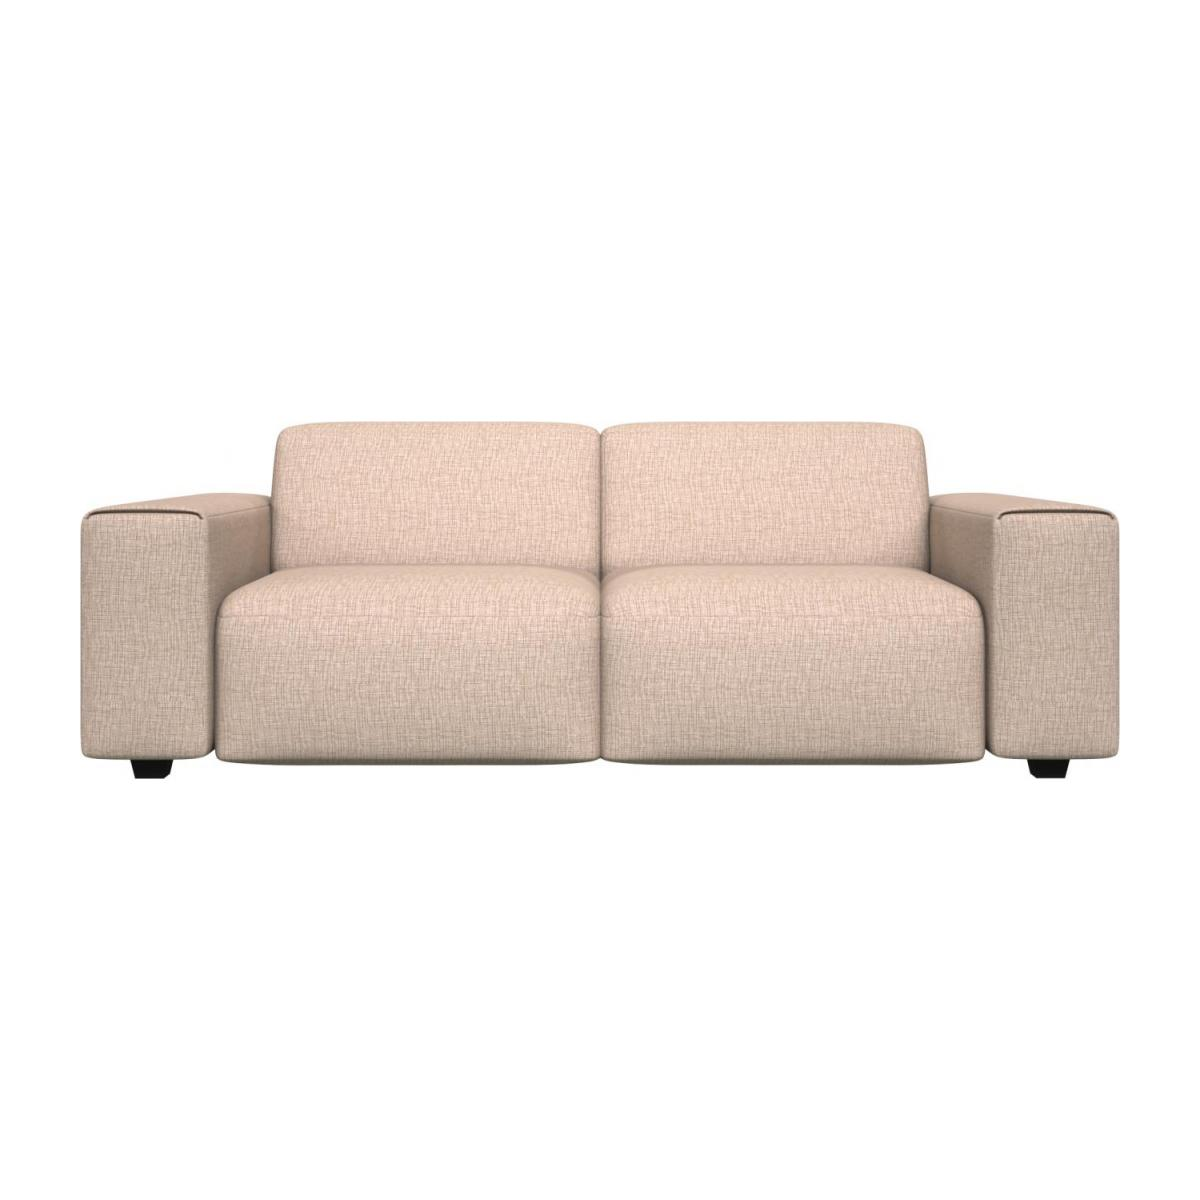 3 seater sofa in Ancio fabric, nature n°2